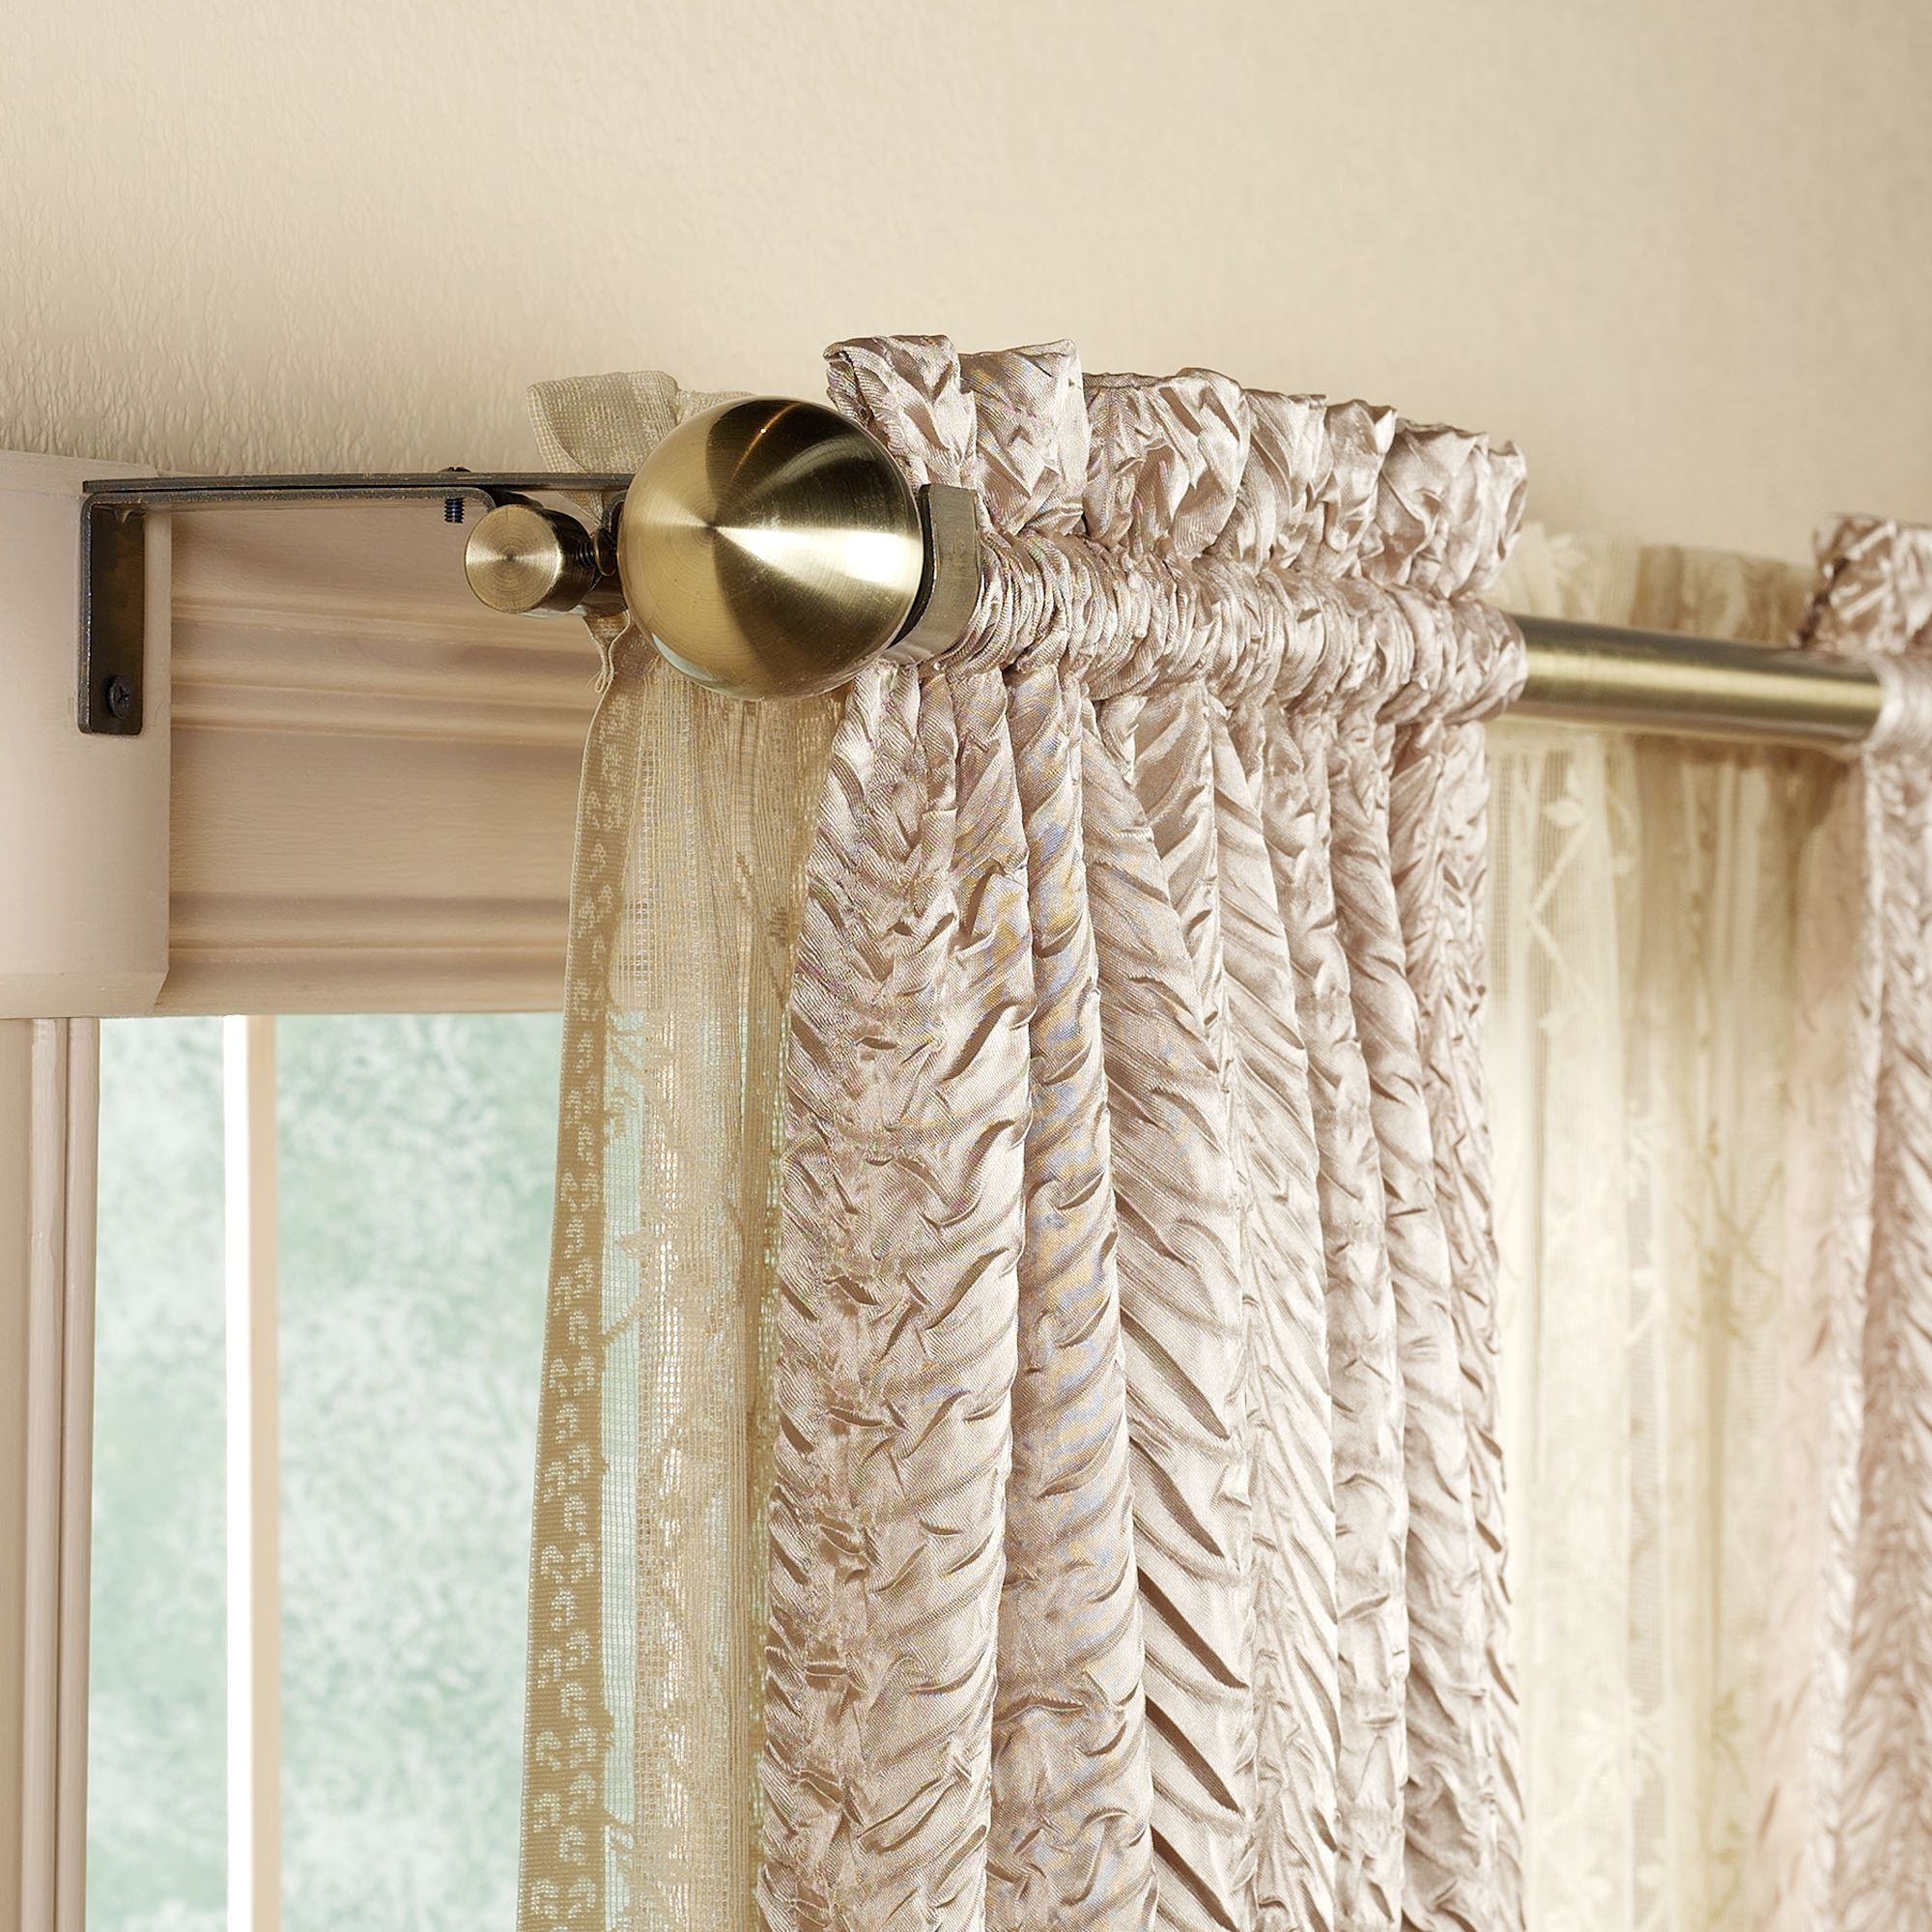 Decorative Double Curtain Rod 28quot; to 86quot;